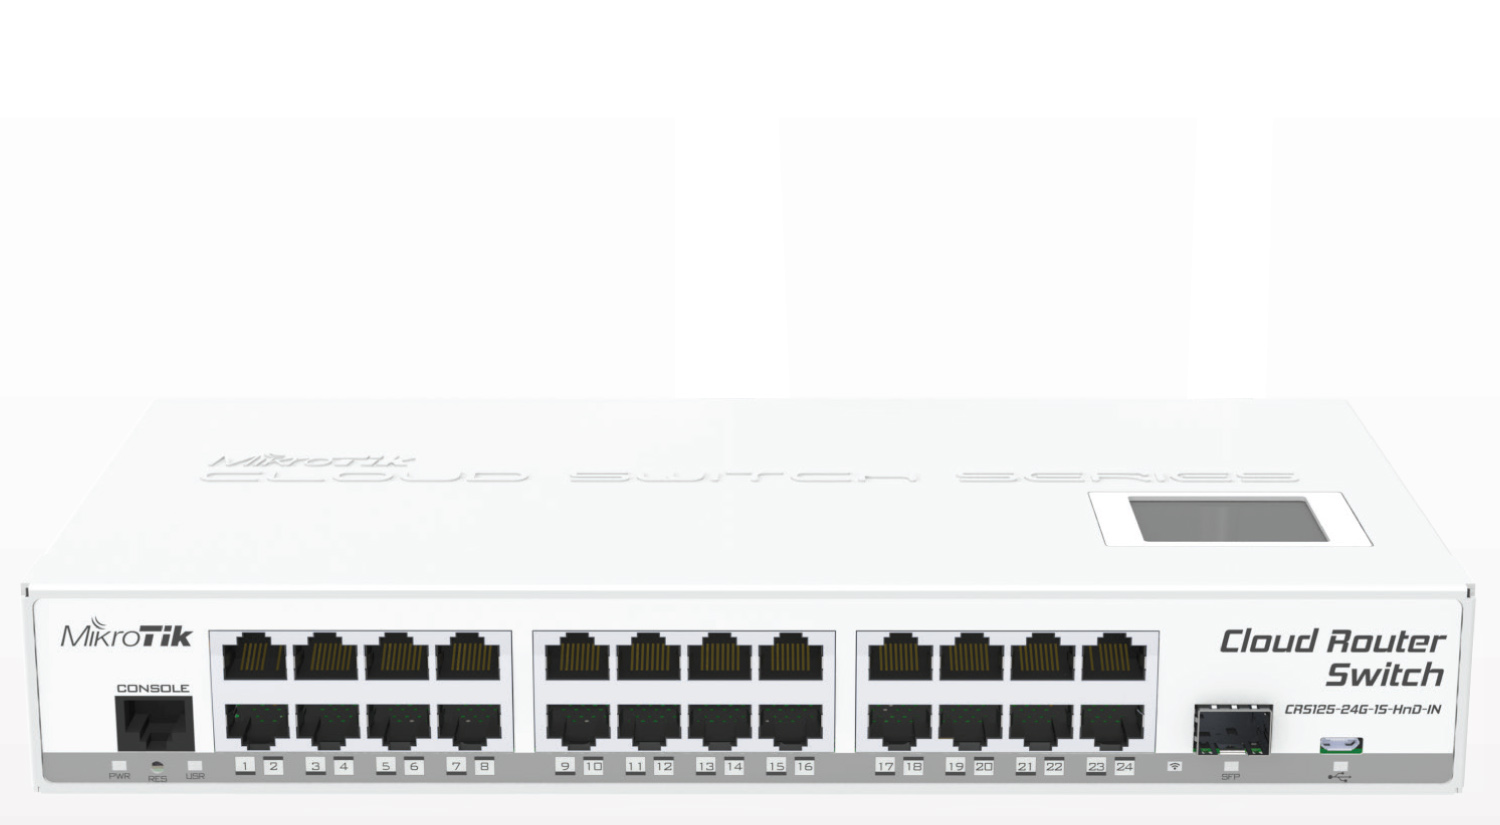 CRS125-24G-1S-IN cloud switch